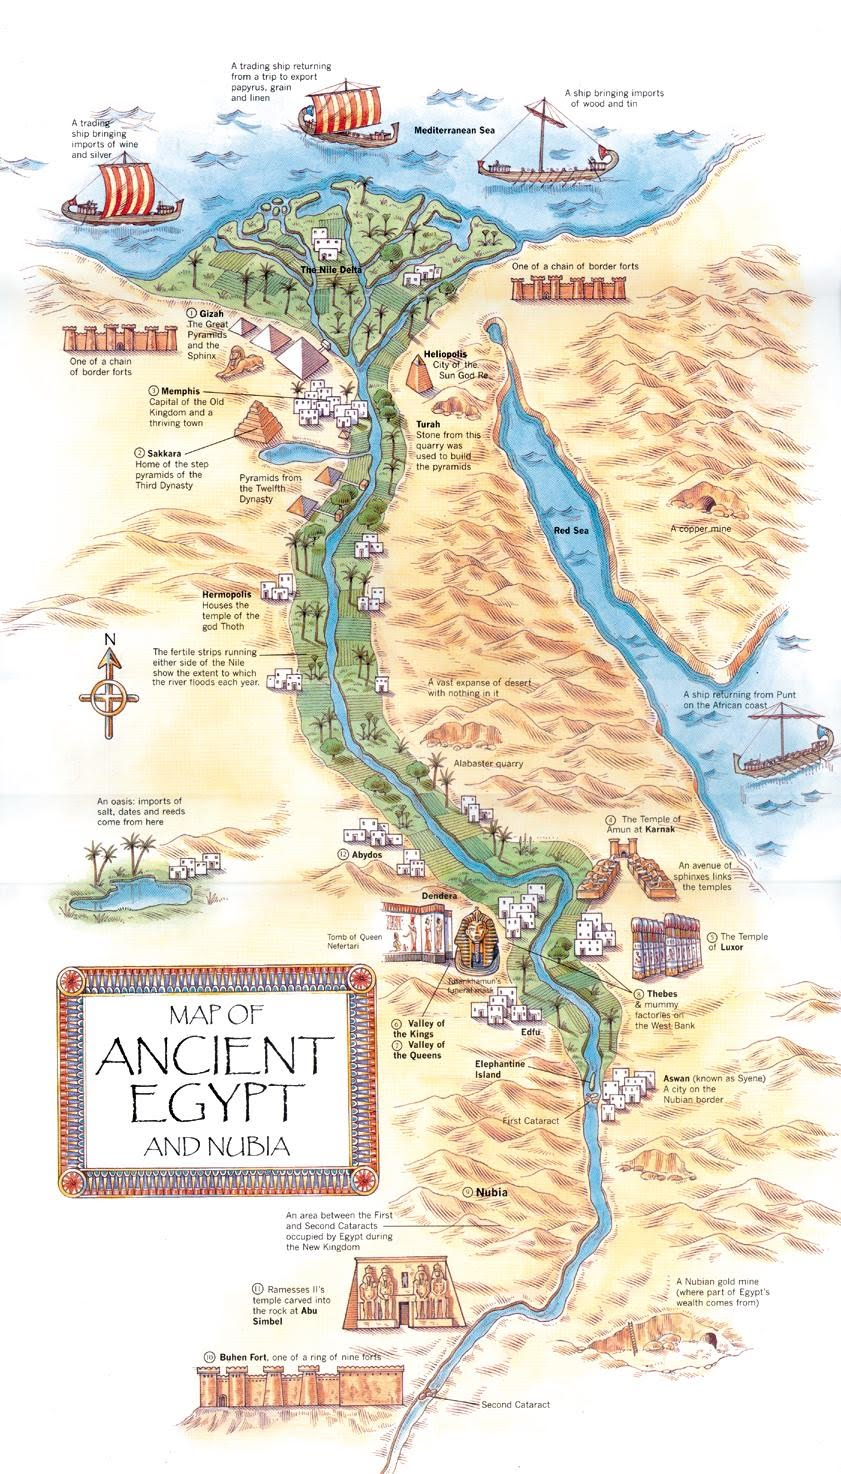 Ancient Egypt maps for the map assignment - Mr. Brunken's Online Classroom